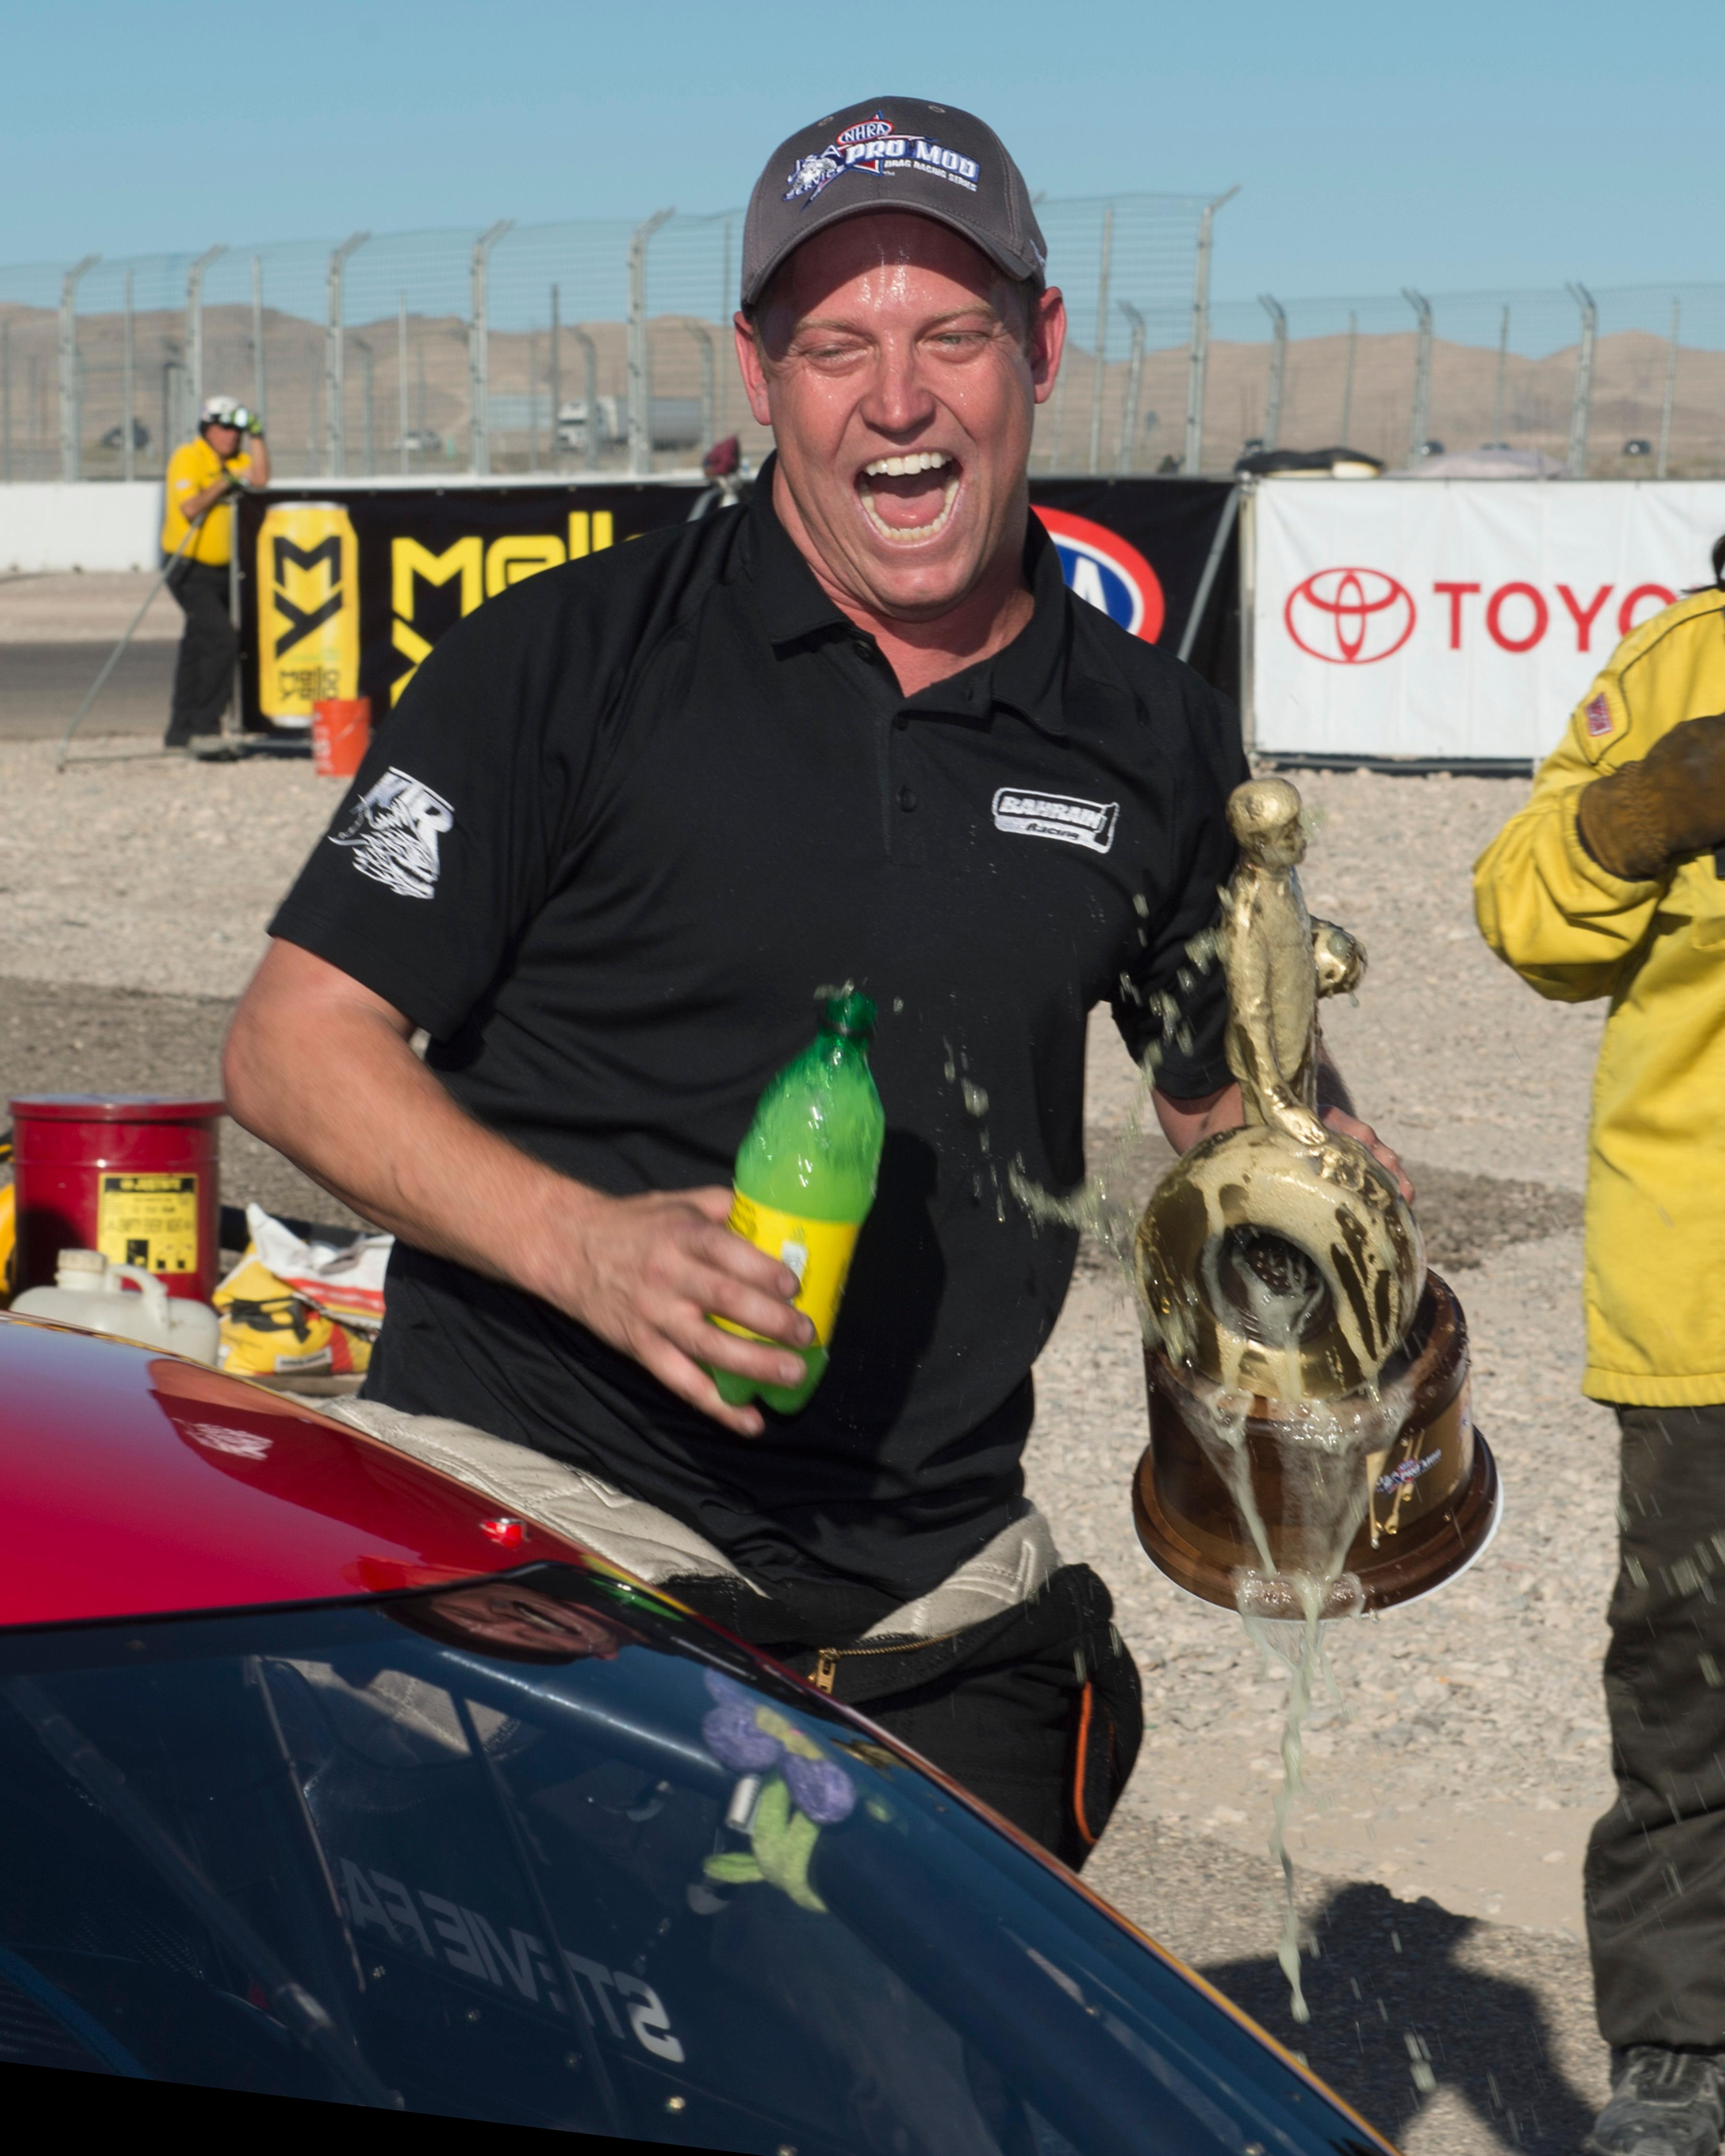 Pro Mod driver Steve Jackson celebrates his win at the NHRA Toyota Nationals Sunday, October 29, 2017, at The Strip at the Las Vegas Motor Speedway. CREDIT: Sam Morris/Las Vegas News Bureau